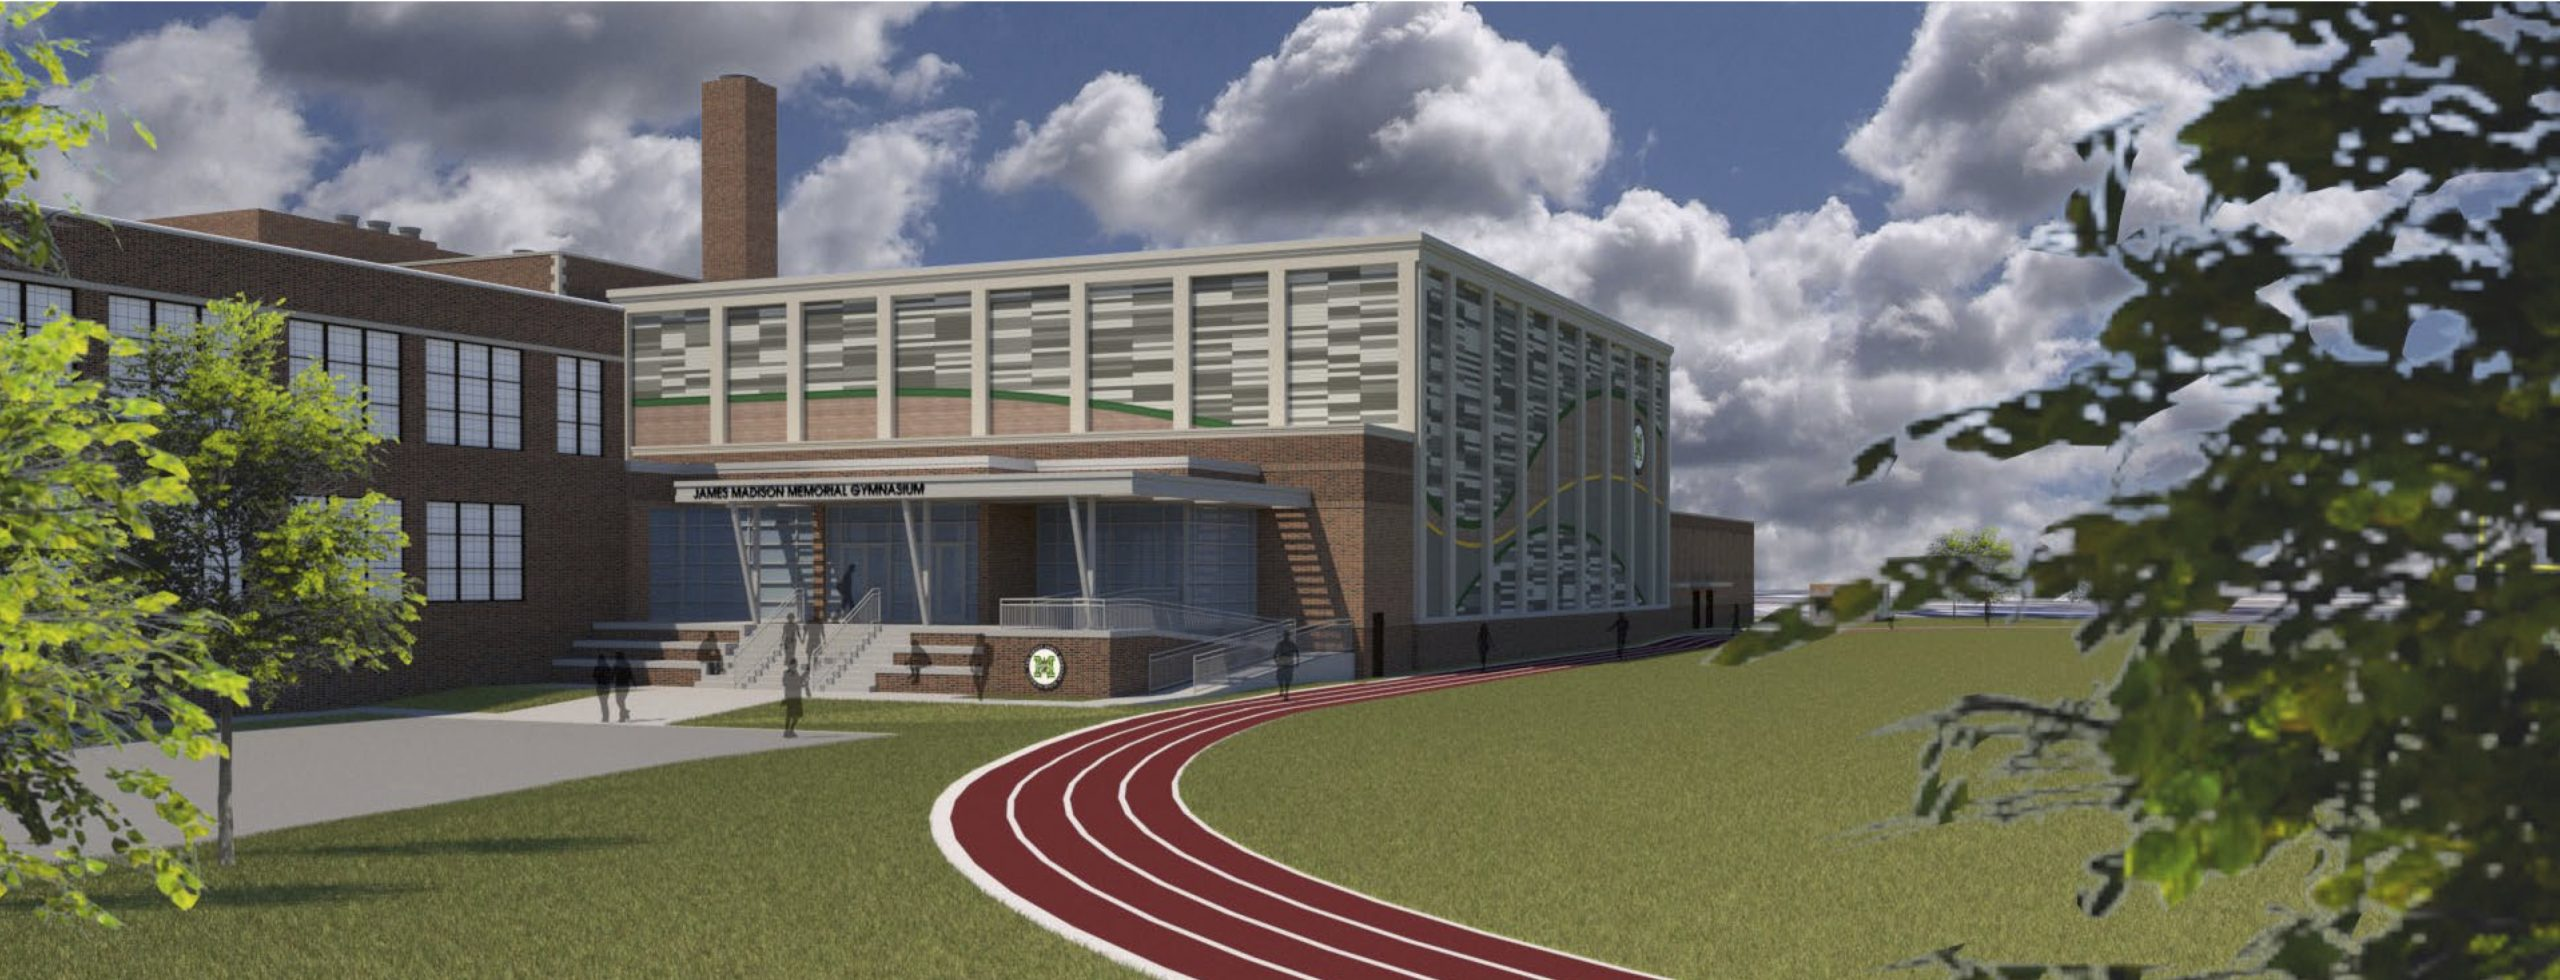 New gym, storm shelter coming to Dallas' James Madison High School